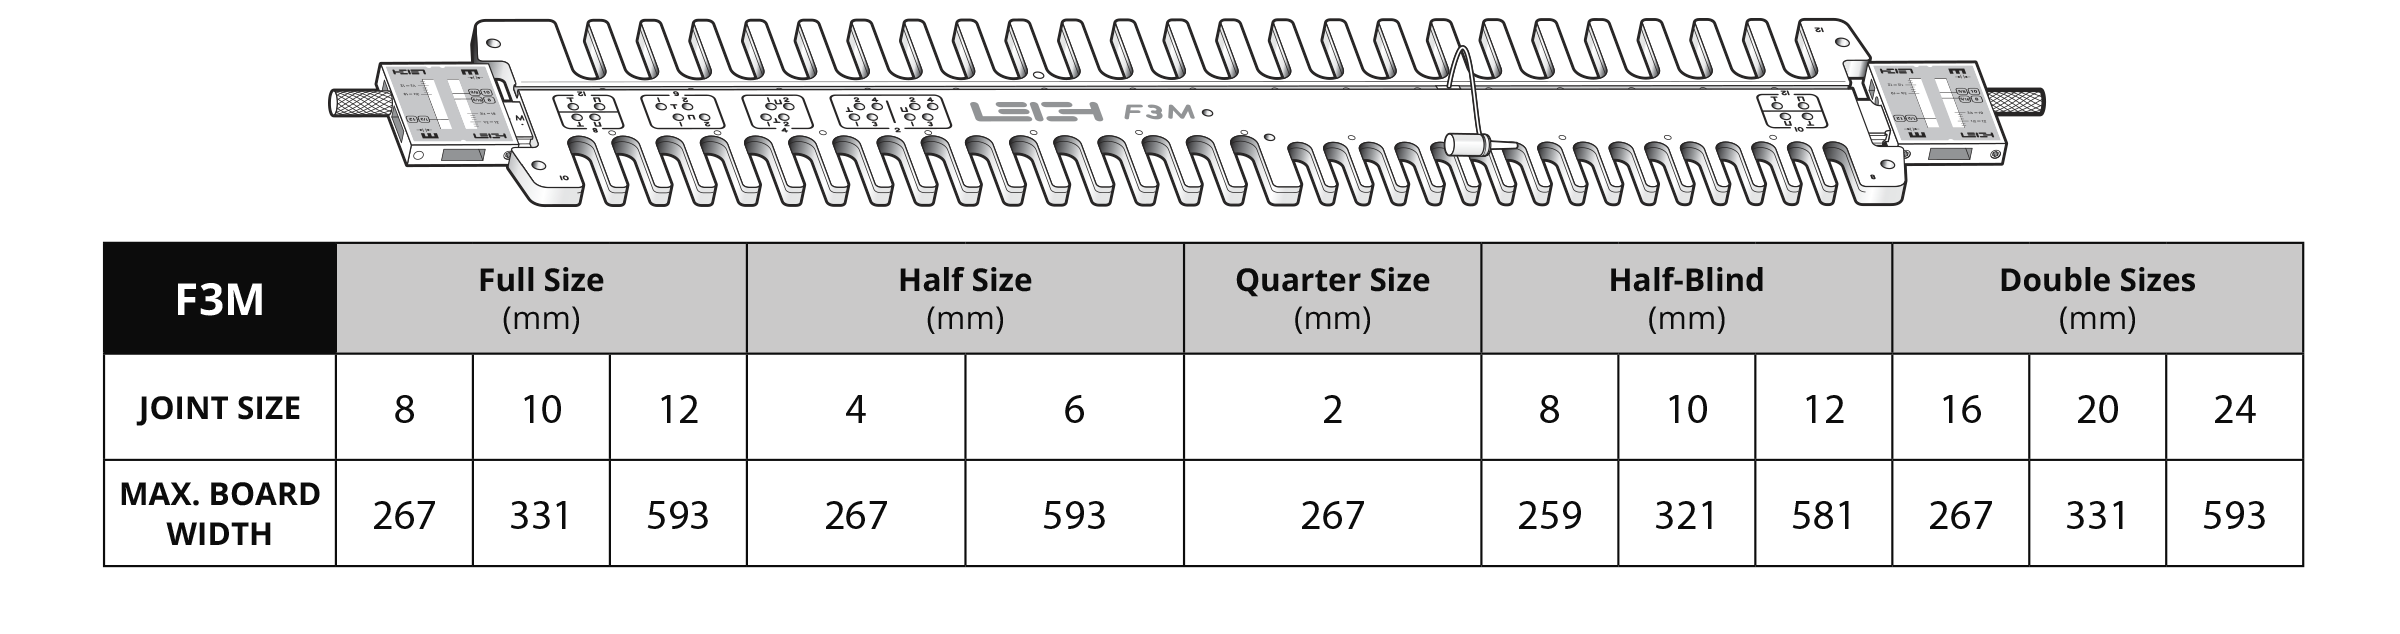 F3M Joint Size Table